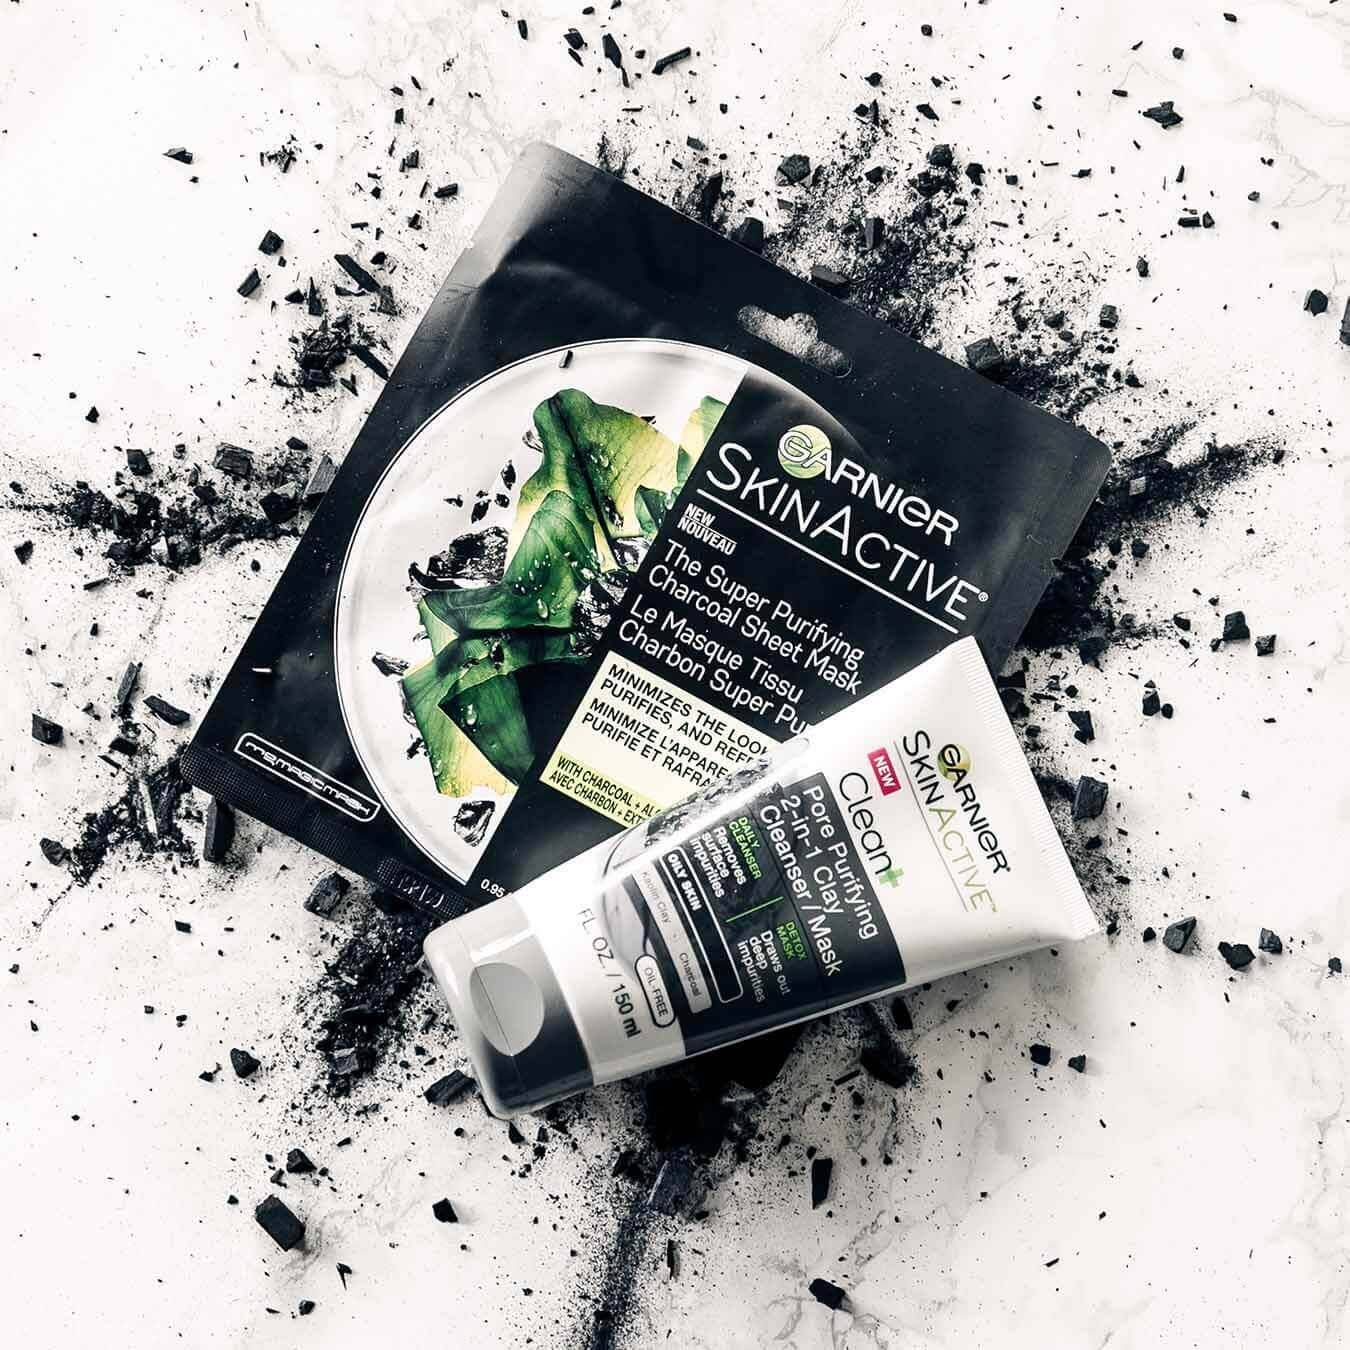 Garnier SkinActive Super Purifying Charcoal Sheet Mask and SkinActive Clean+ Blackhead Eliminating Scrub on an explosion of charcoal chunks and powder on pinkish white marble.